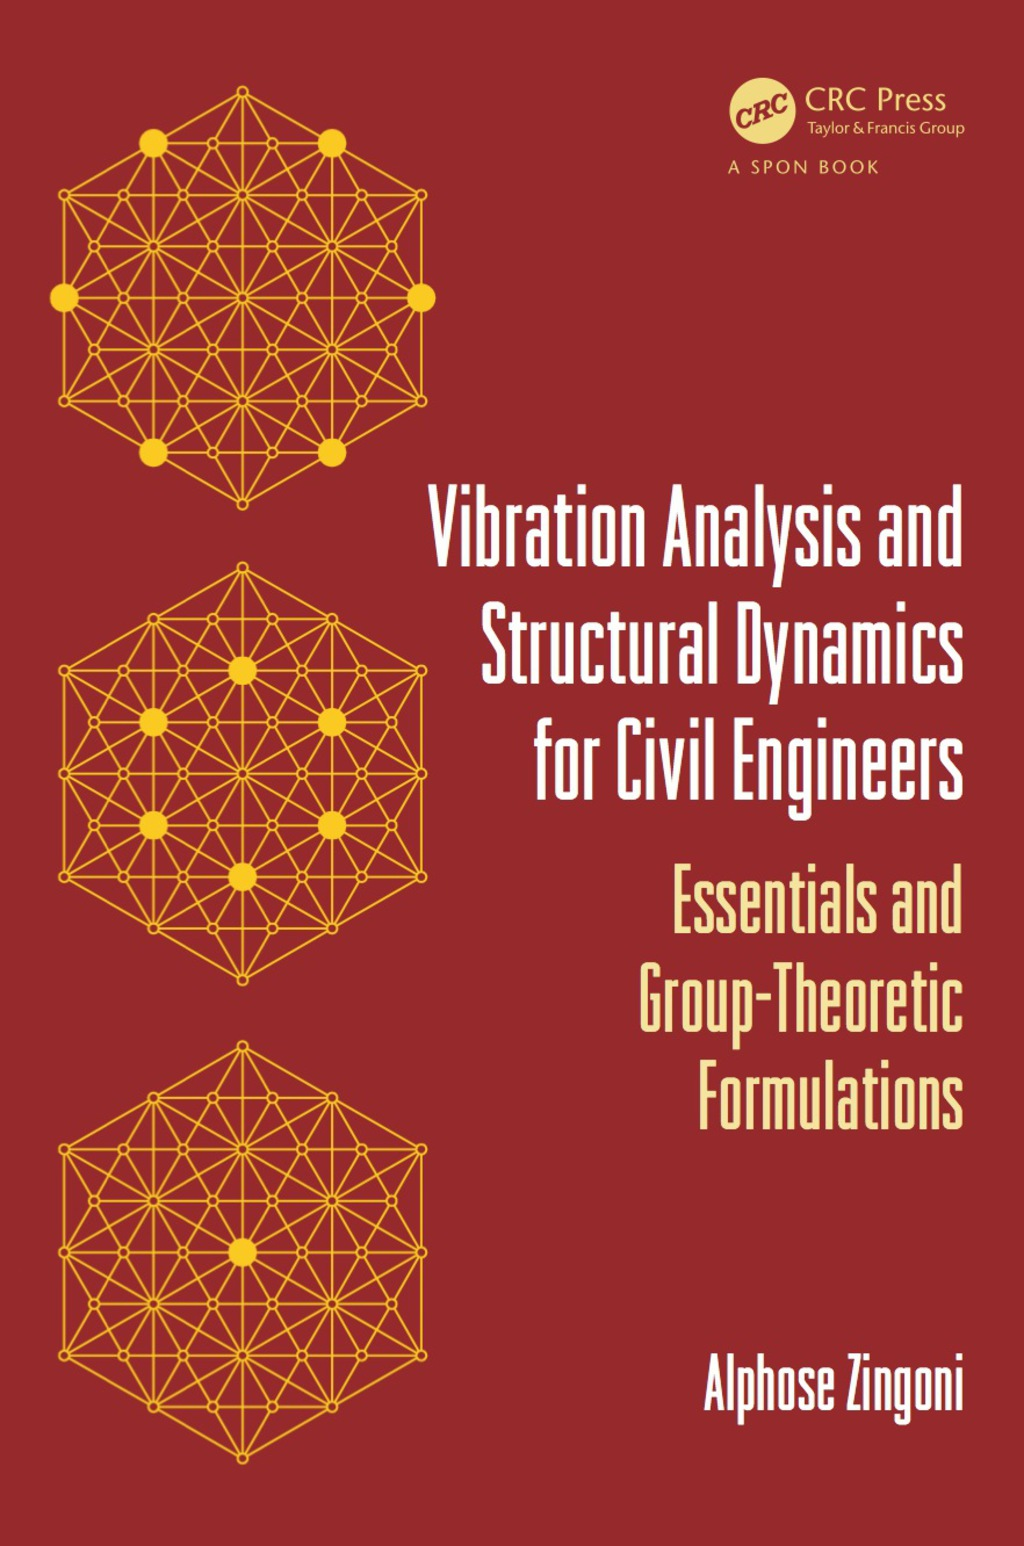 Vibration Analysis and Structural Dynamics for Civil Engineers (ebook) eBooks